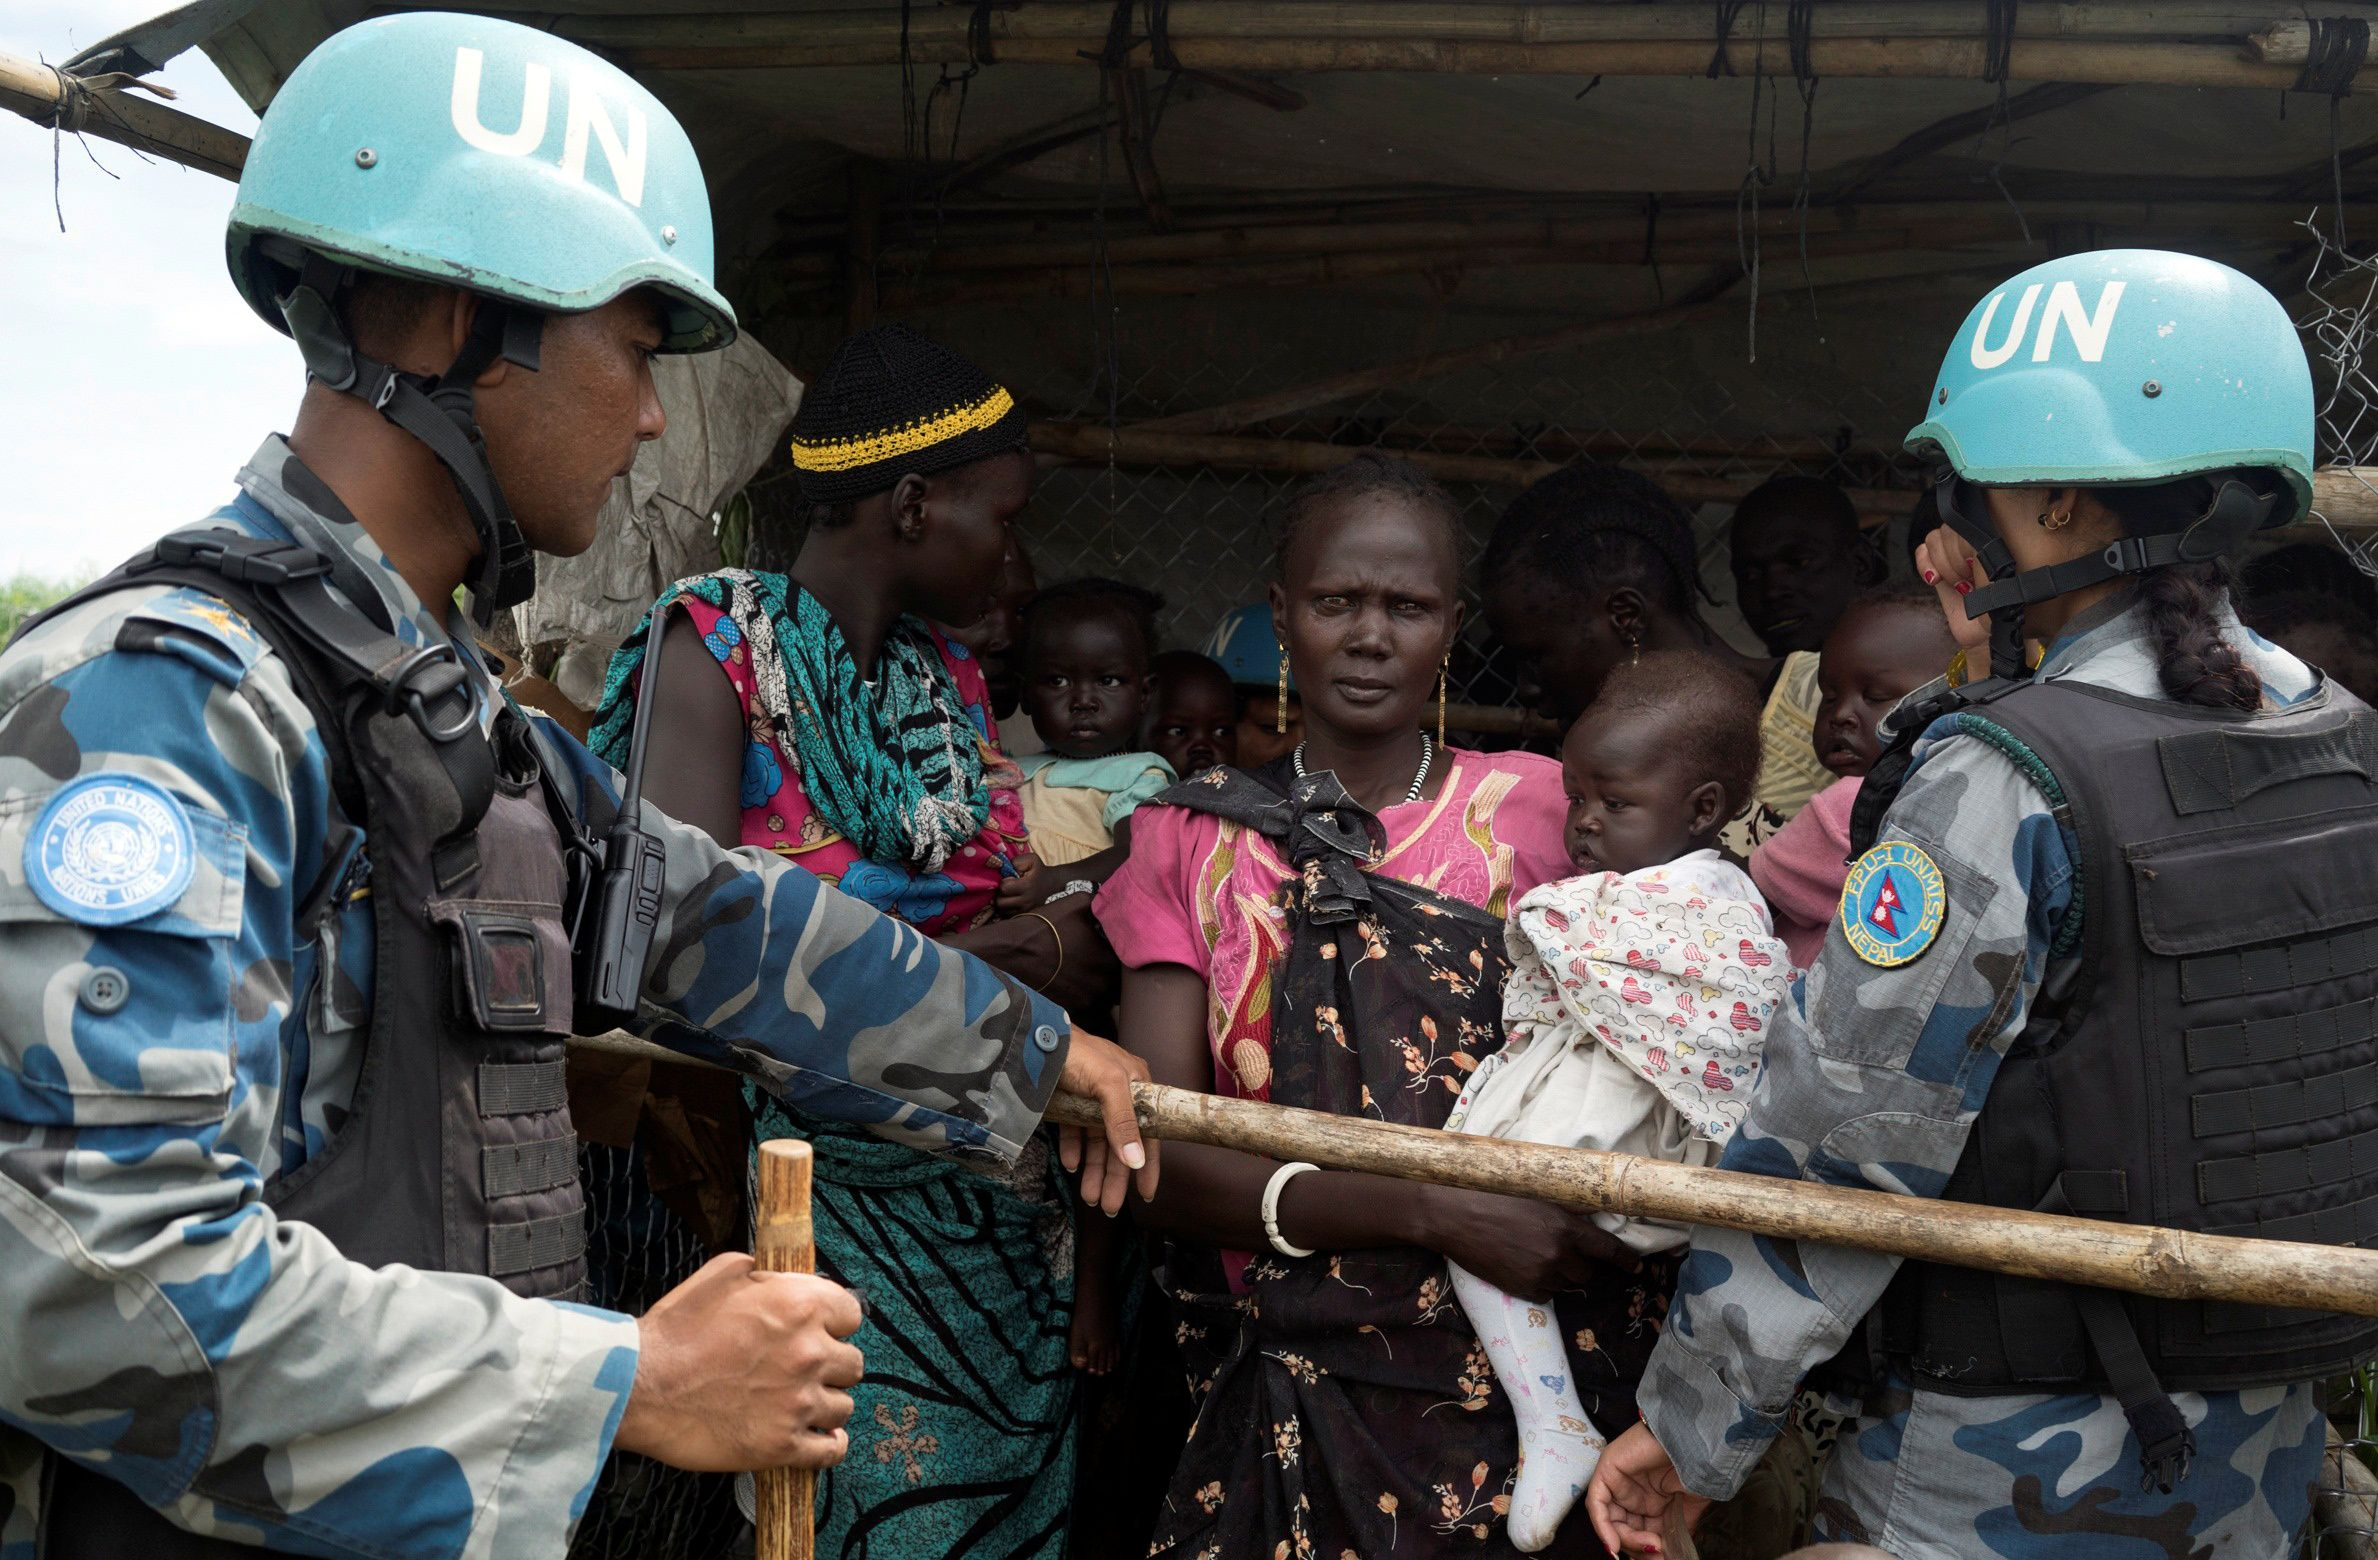 U.N. peacekeepers South Sudan